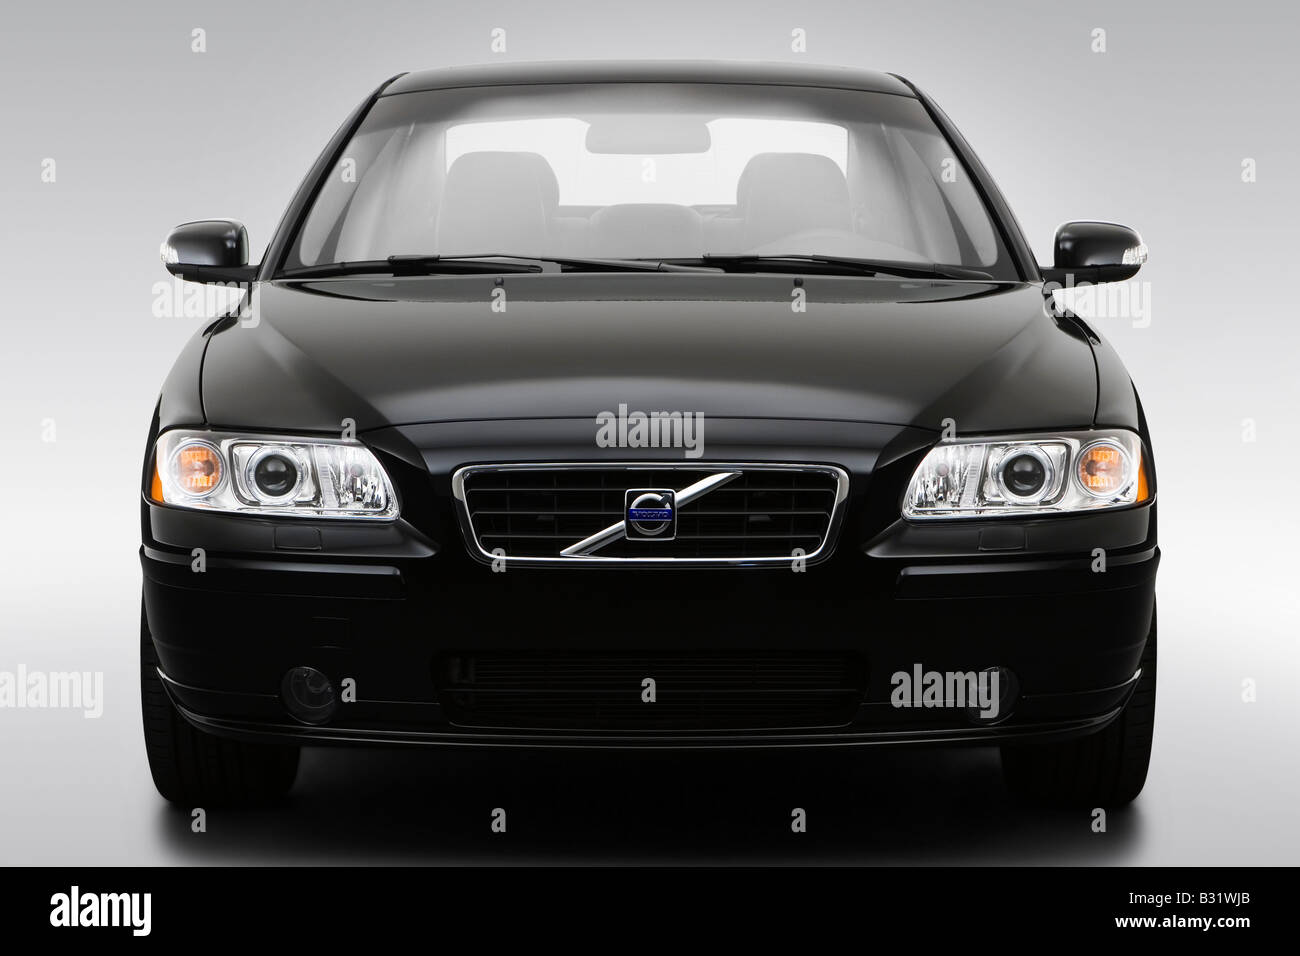 2008 volvo s60 t5 a sr in black low wide front